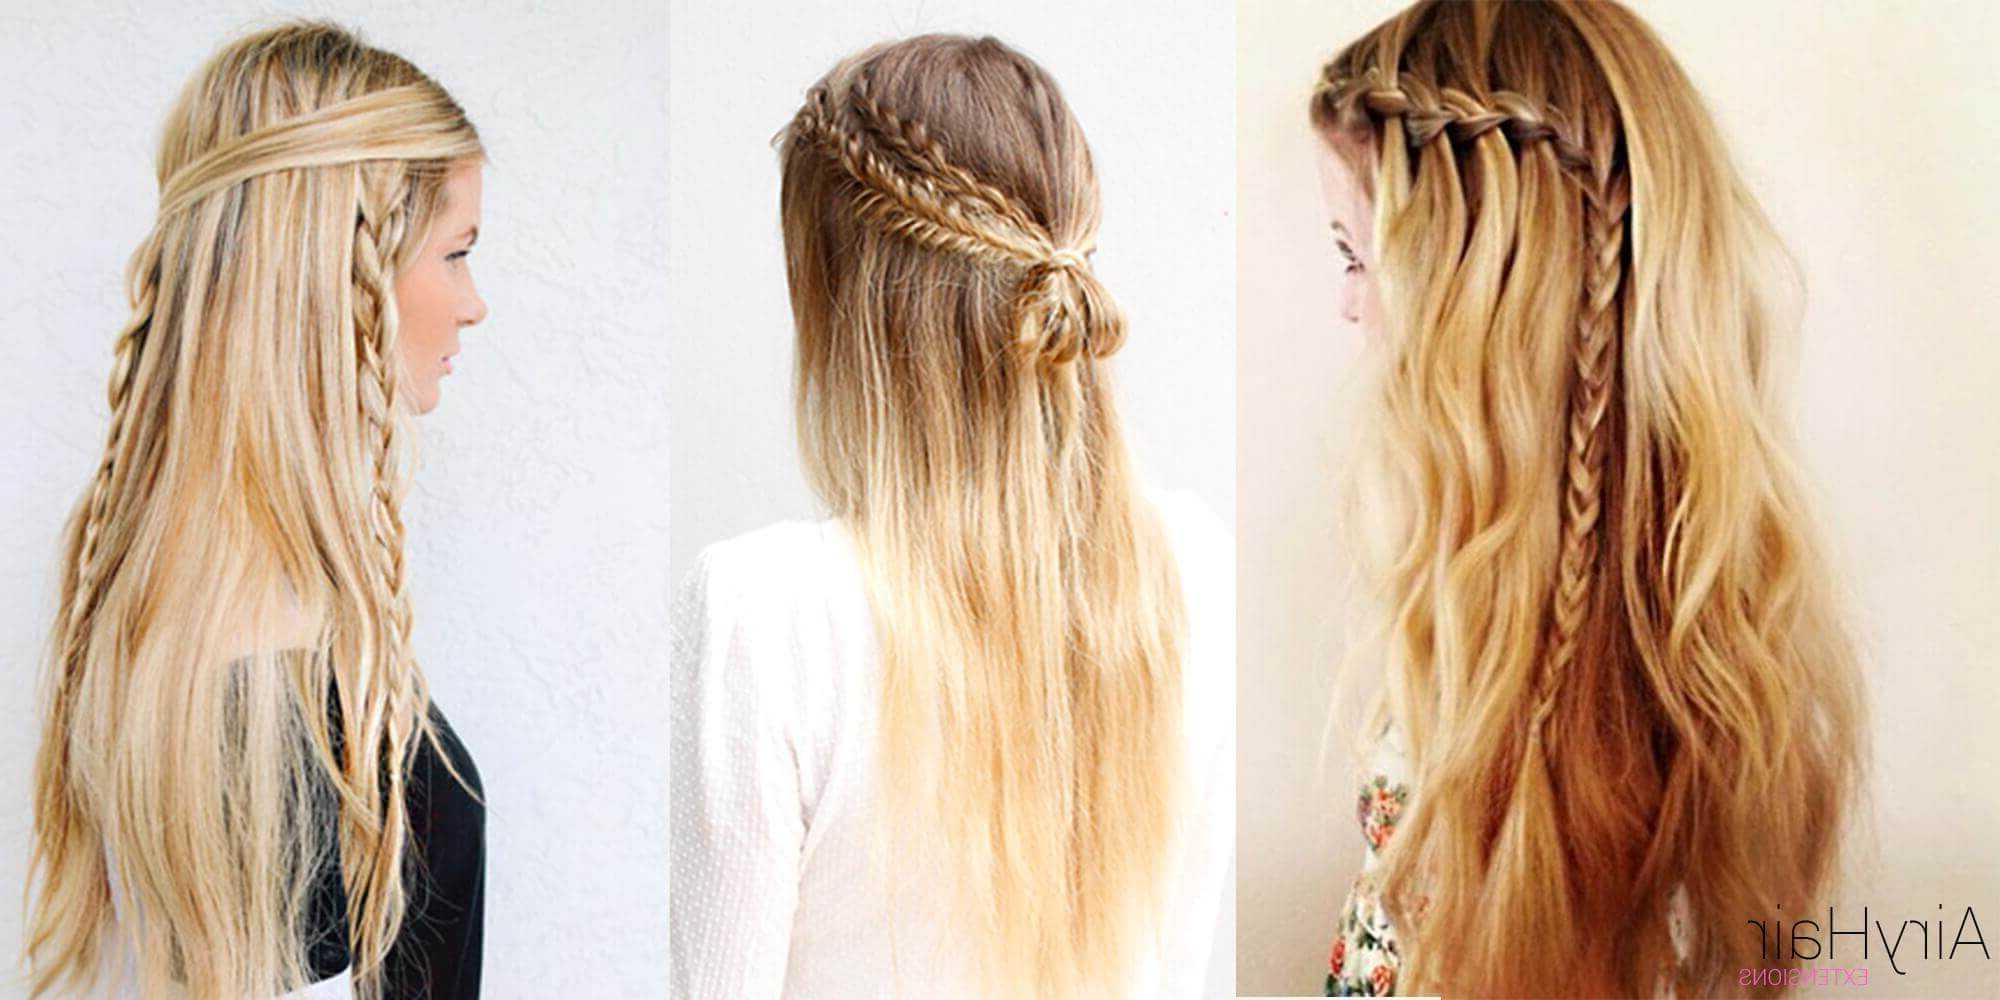 10 Best Chic And Creative Boho Hairstyles Intended For Most Recent Chic Bohemian Braid Hairstyles (Gallery 2 of 20)